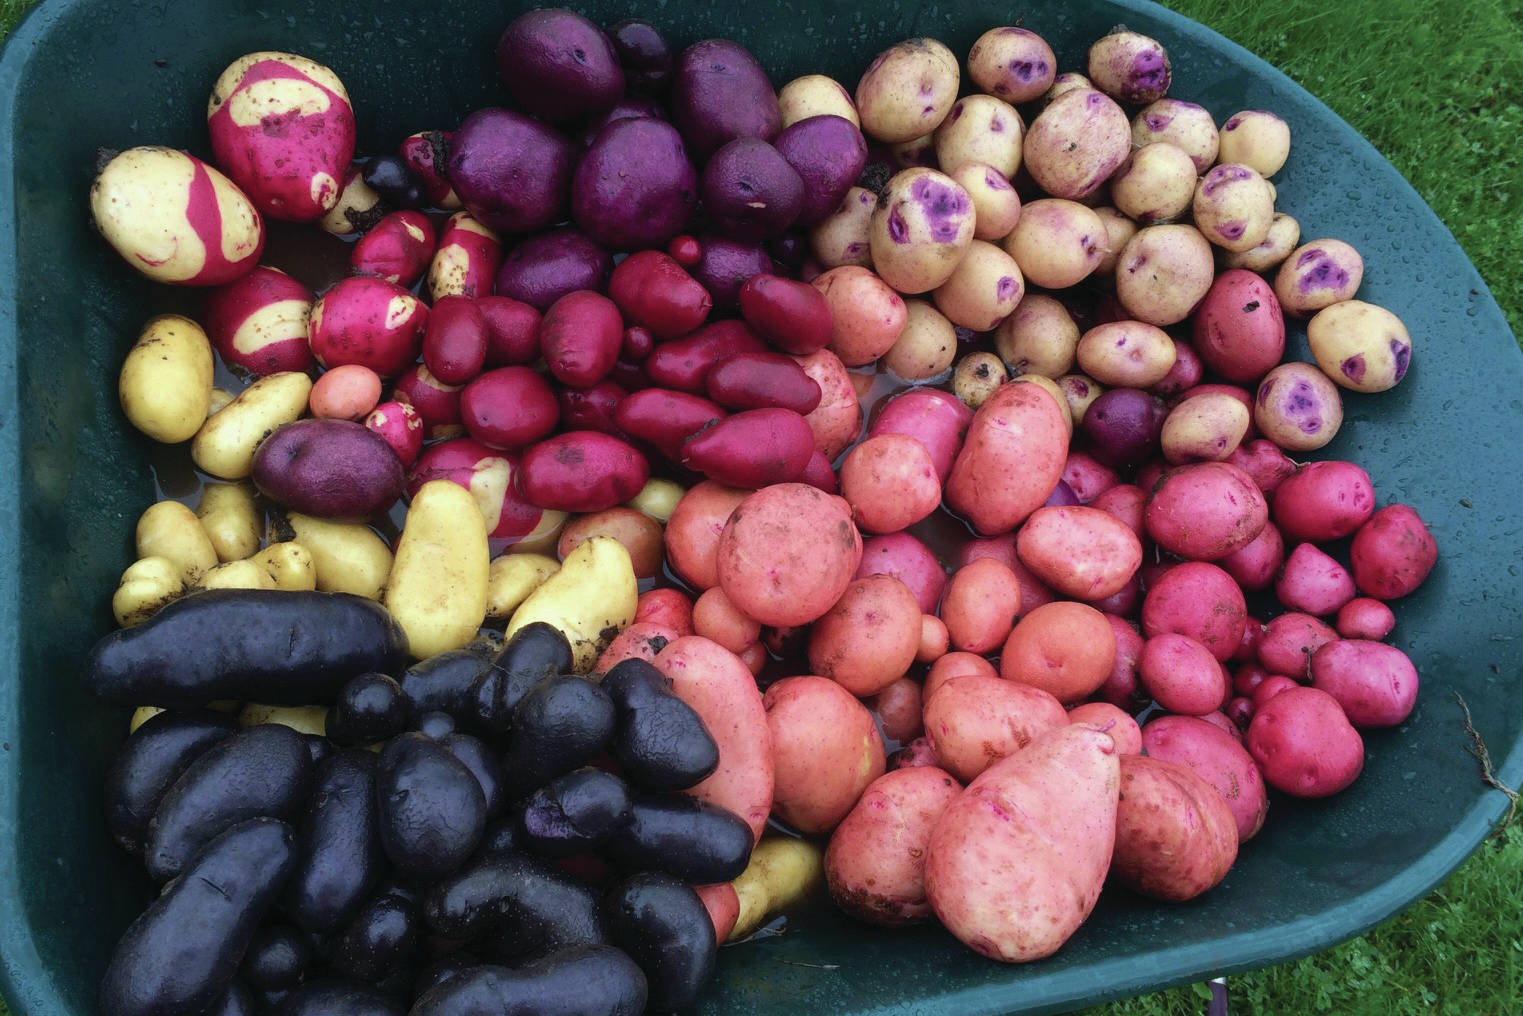 Jane Wiebe's wheelbarrow of lovely tubers will cause any potato aficionado's heart to sing. The photo was taken on Oct. 7, 2019, in Homer, Alaska. (Photo by Jane Wiebe)